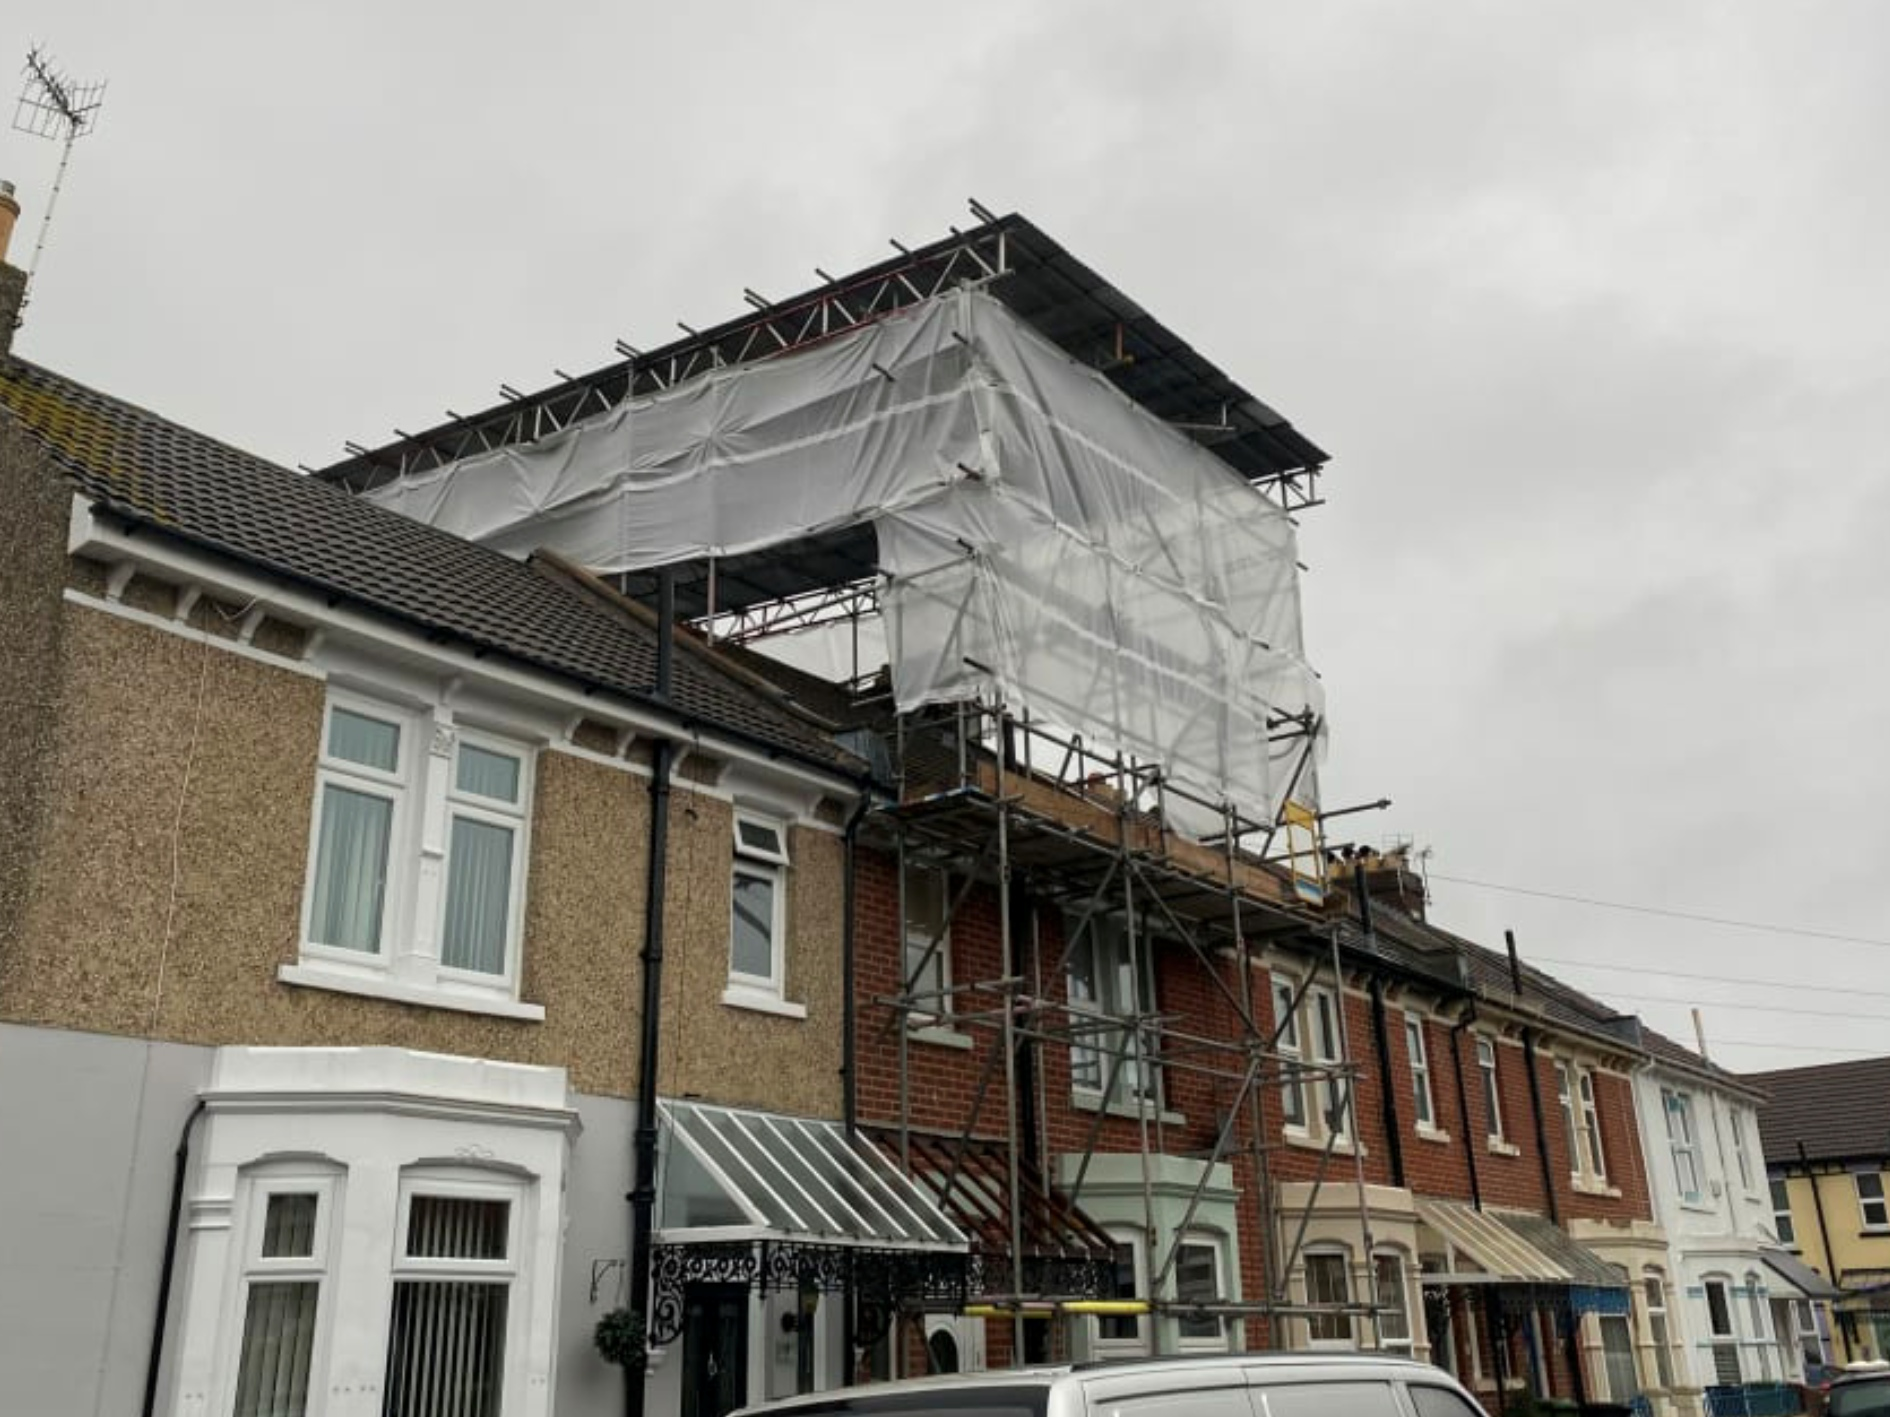 Scaffolding work Residential scaffolding on a terraced house